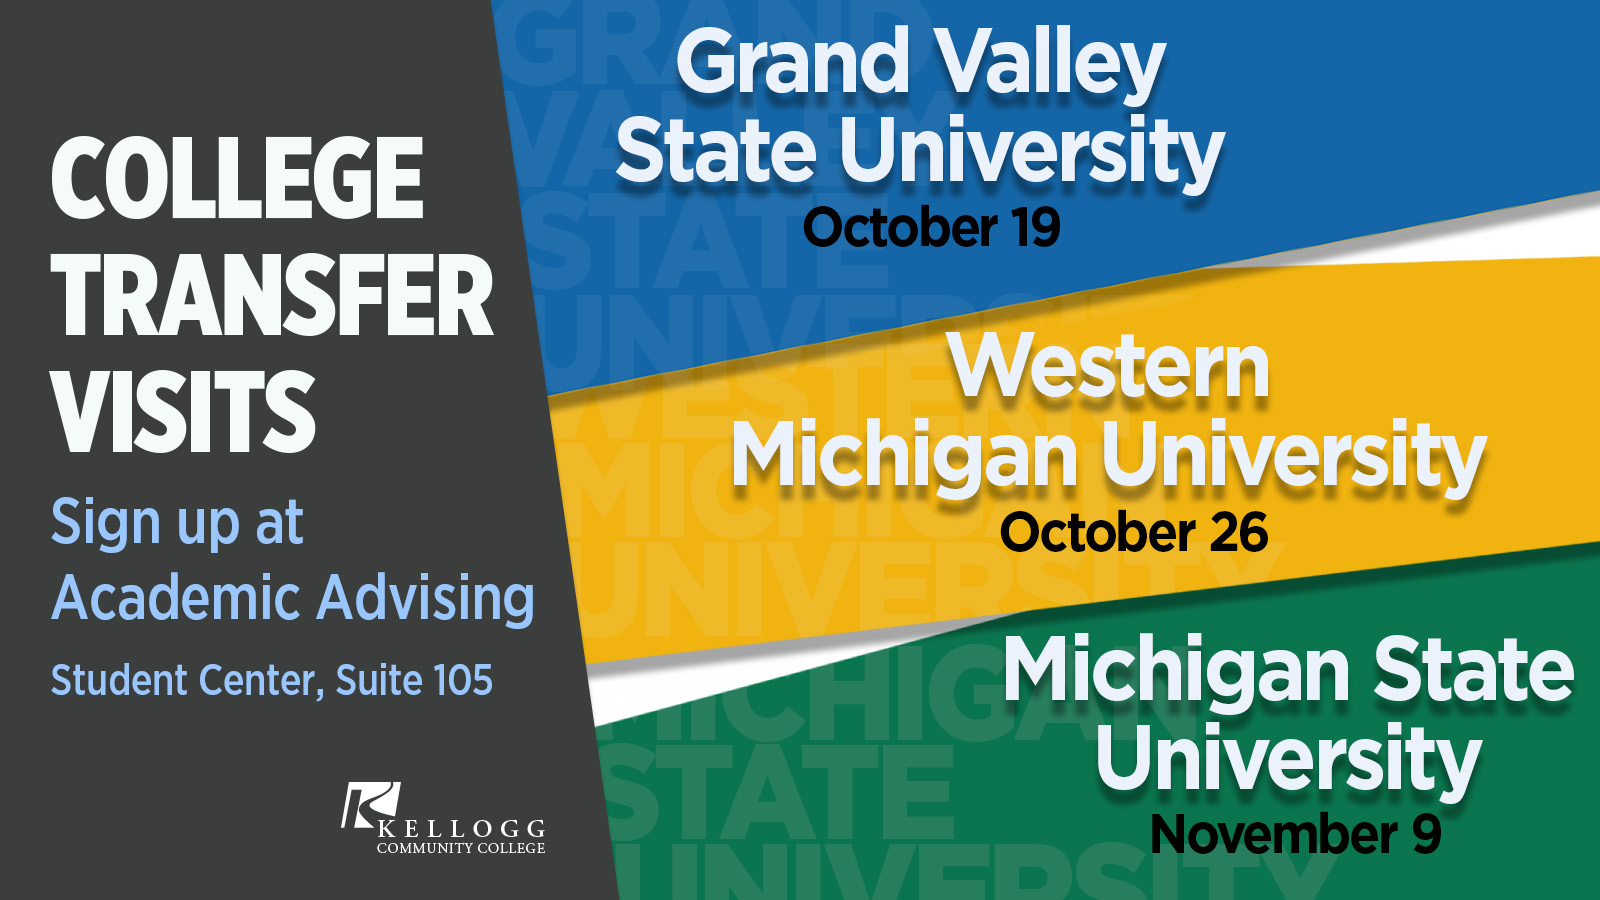 A text slide promoting KCC's Fall 2018 College Transfer Visits, including GVSU Oct. 19, WMU Oct. 26 and MSU Nov. 9.